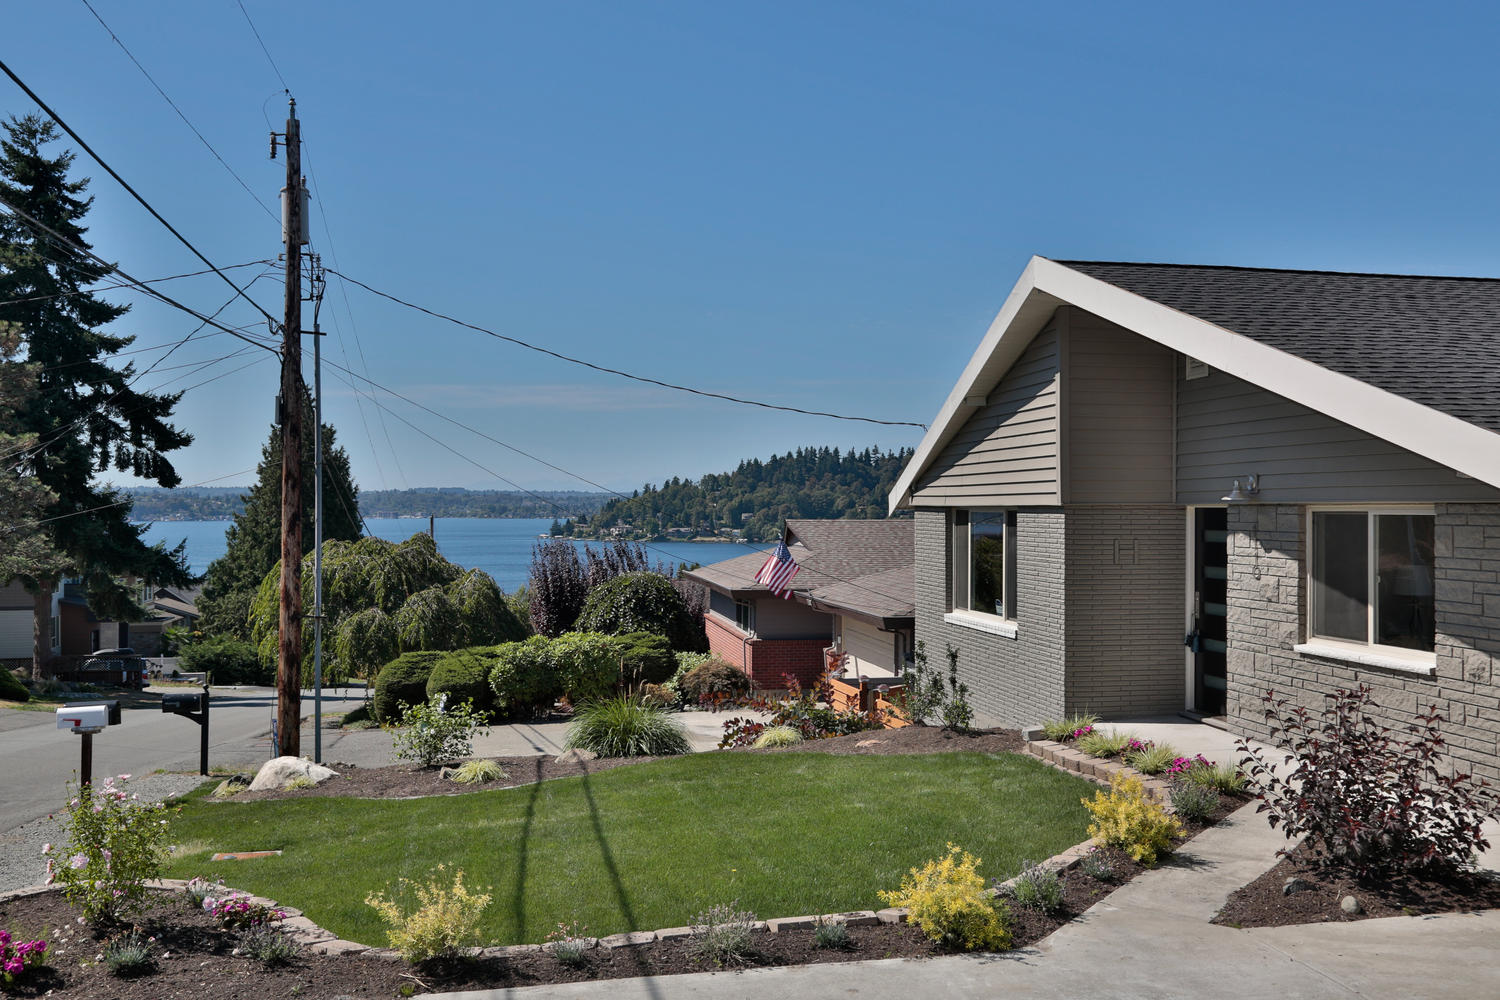 1110 N 36th St Renton WA 98056-large-019-14-Short Walk From Beautiful Lake-1500x1000-72dpi